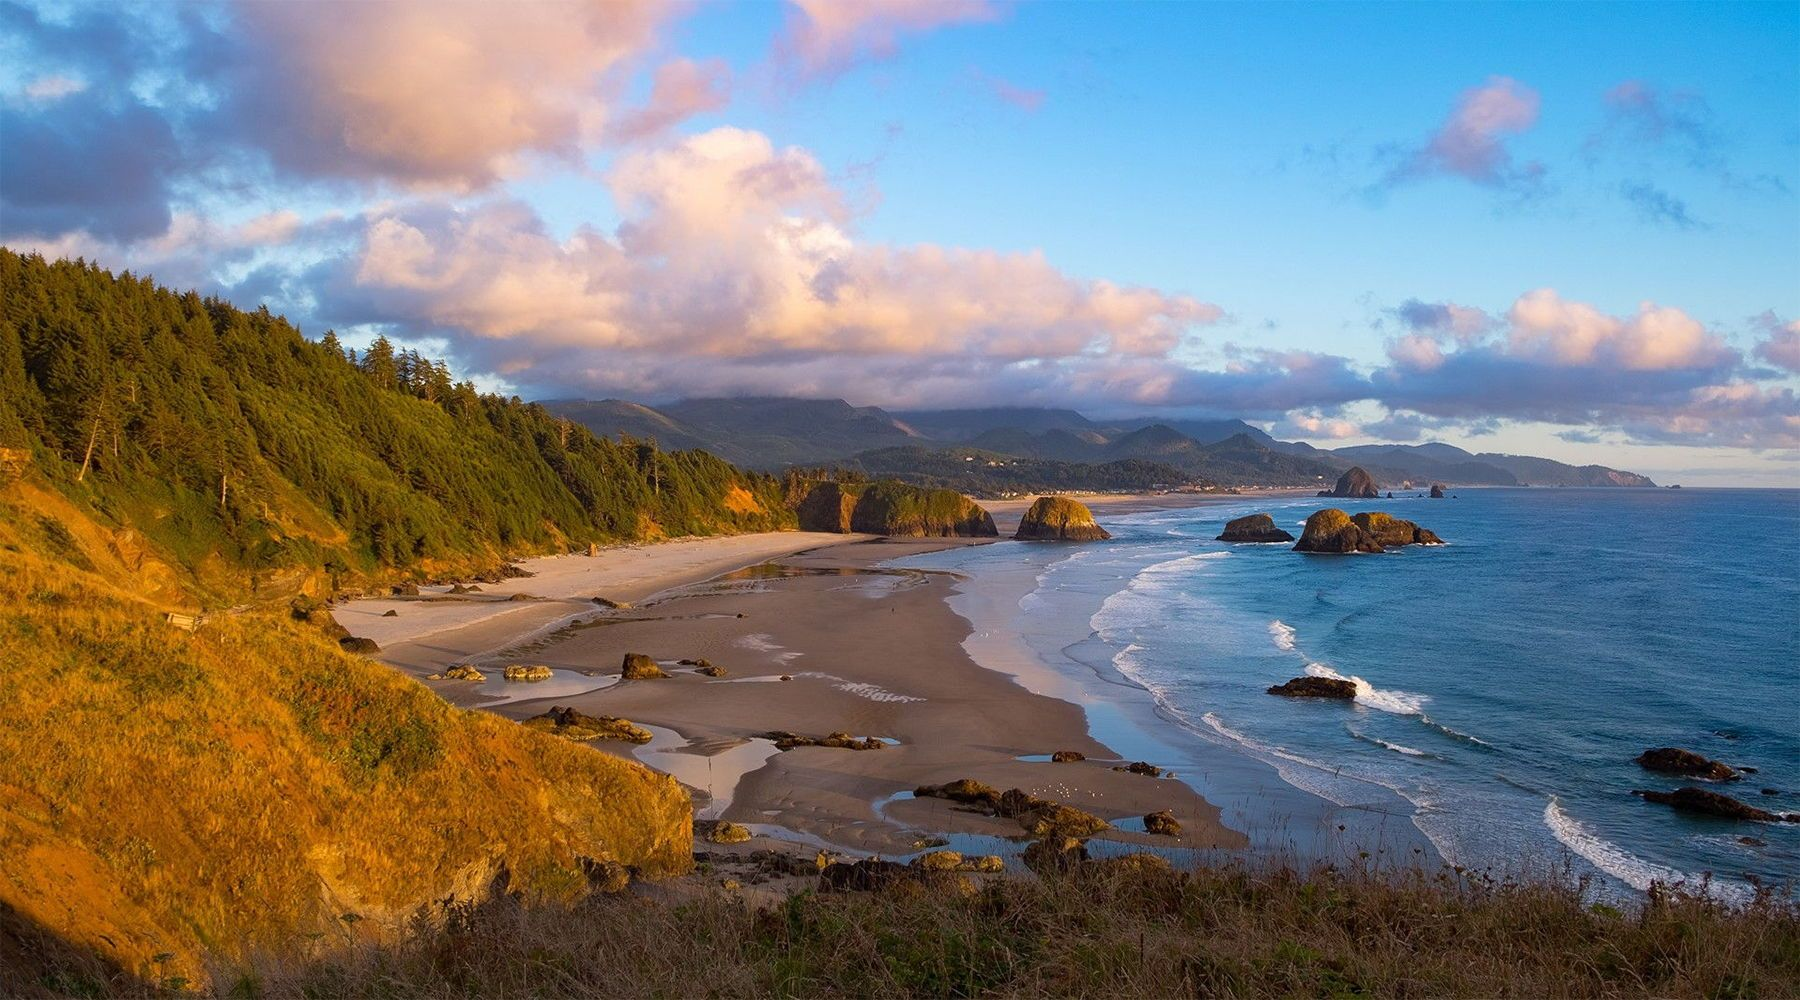 10 State Parks To Visit This Fall